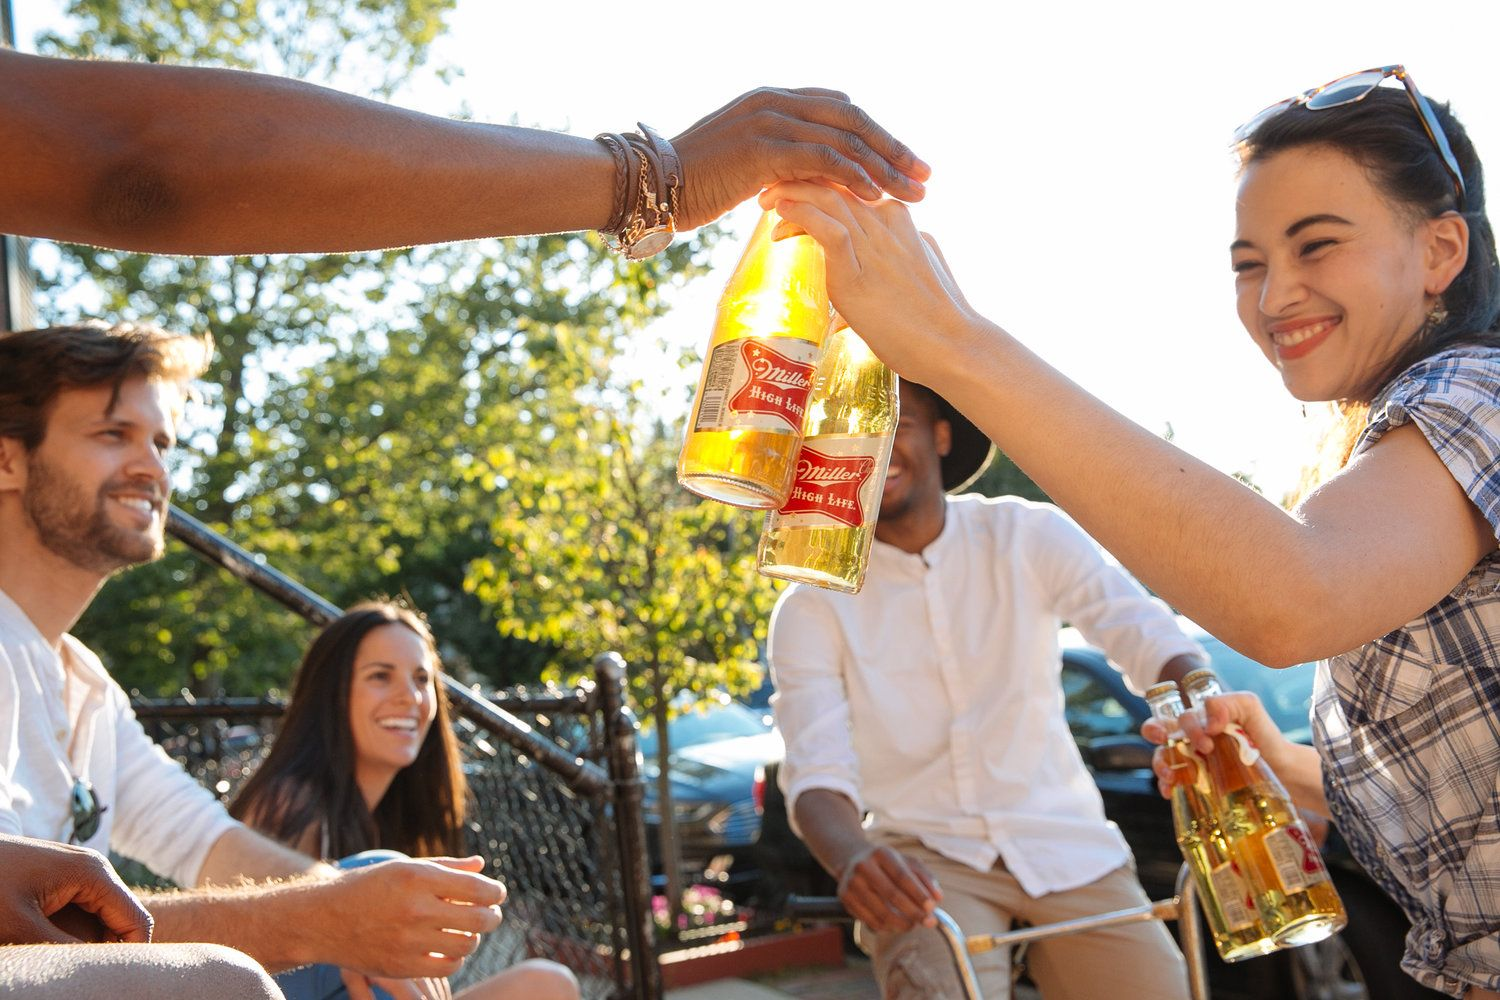 Produced by SAINT LUCY Represents for Miller High Life